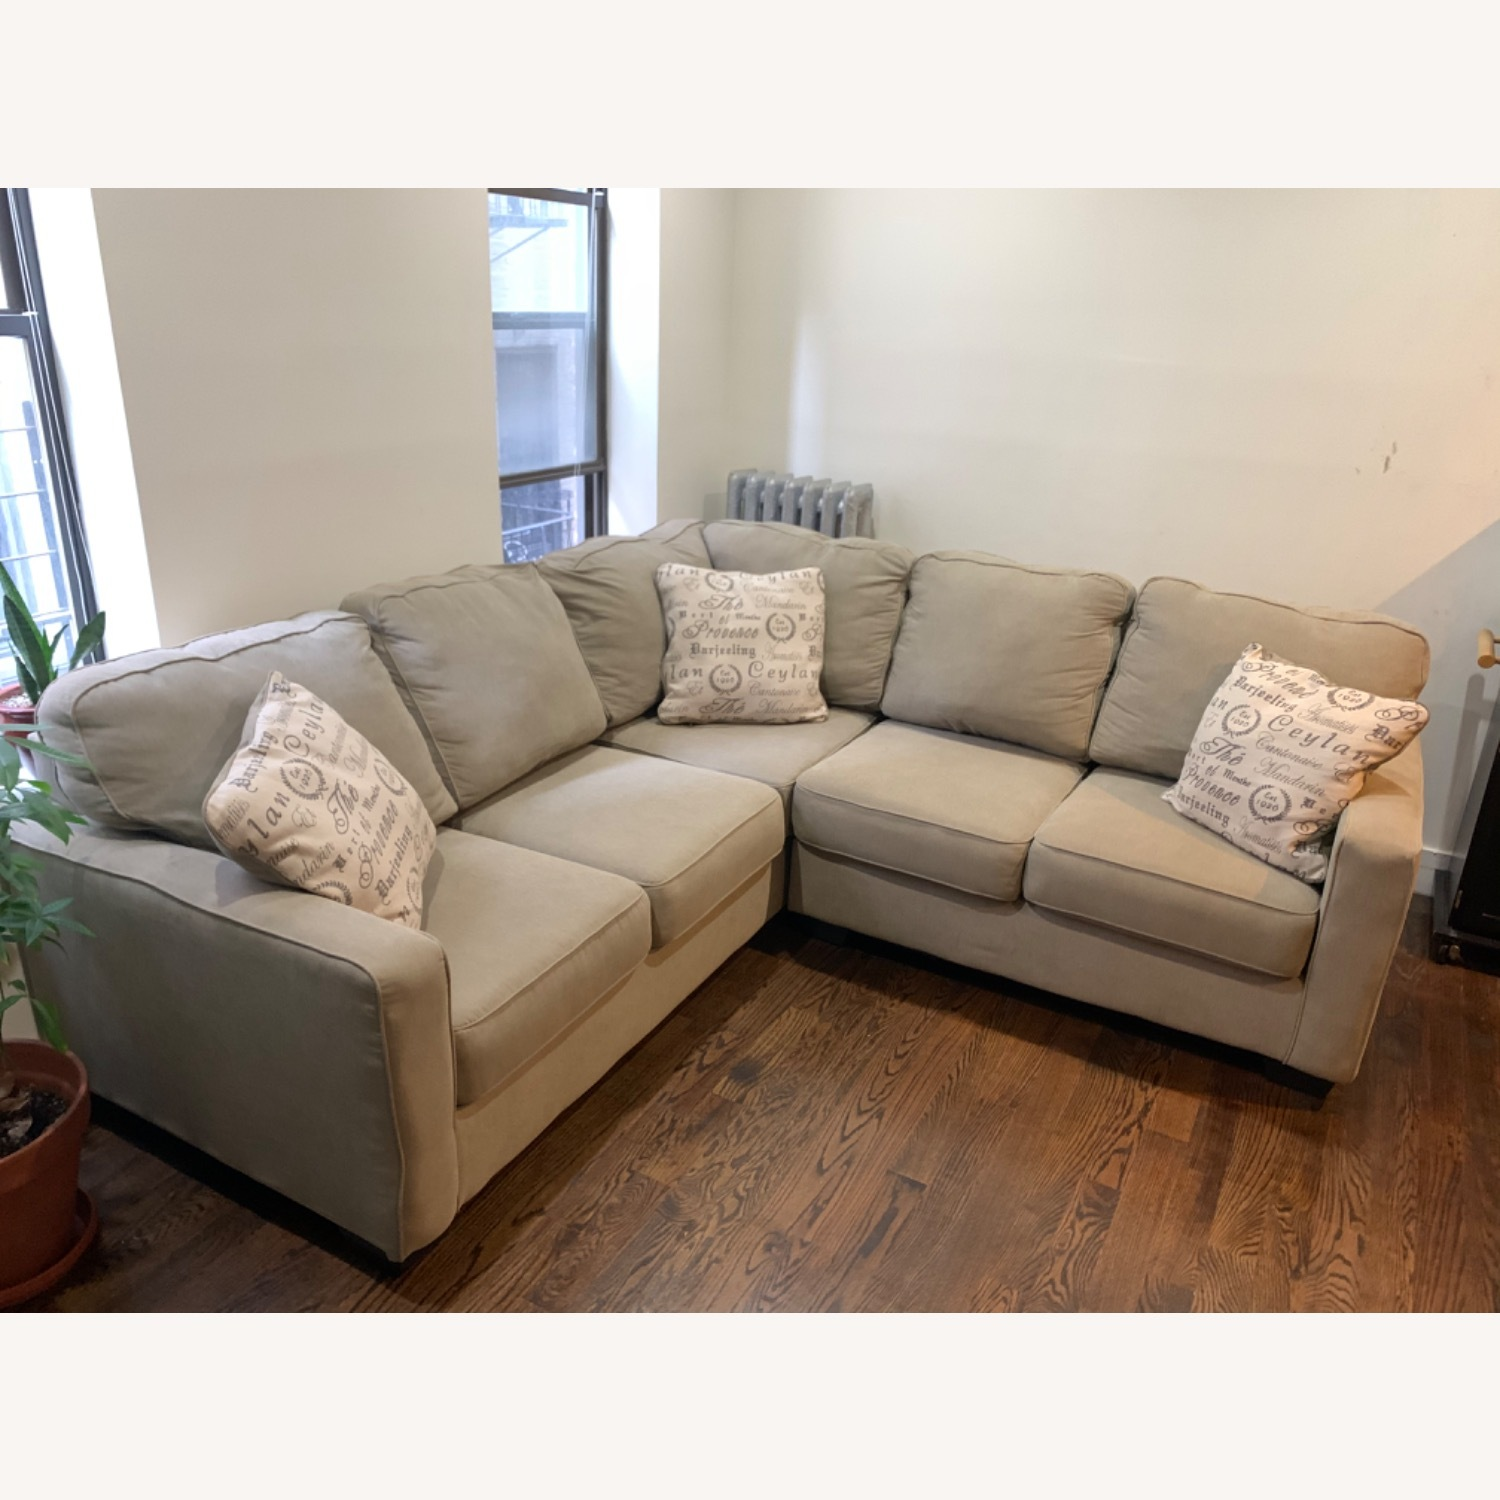 Ashley Furniture Big Comfy Couch - image-2